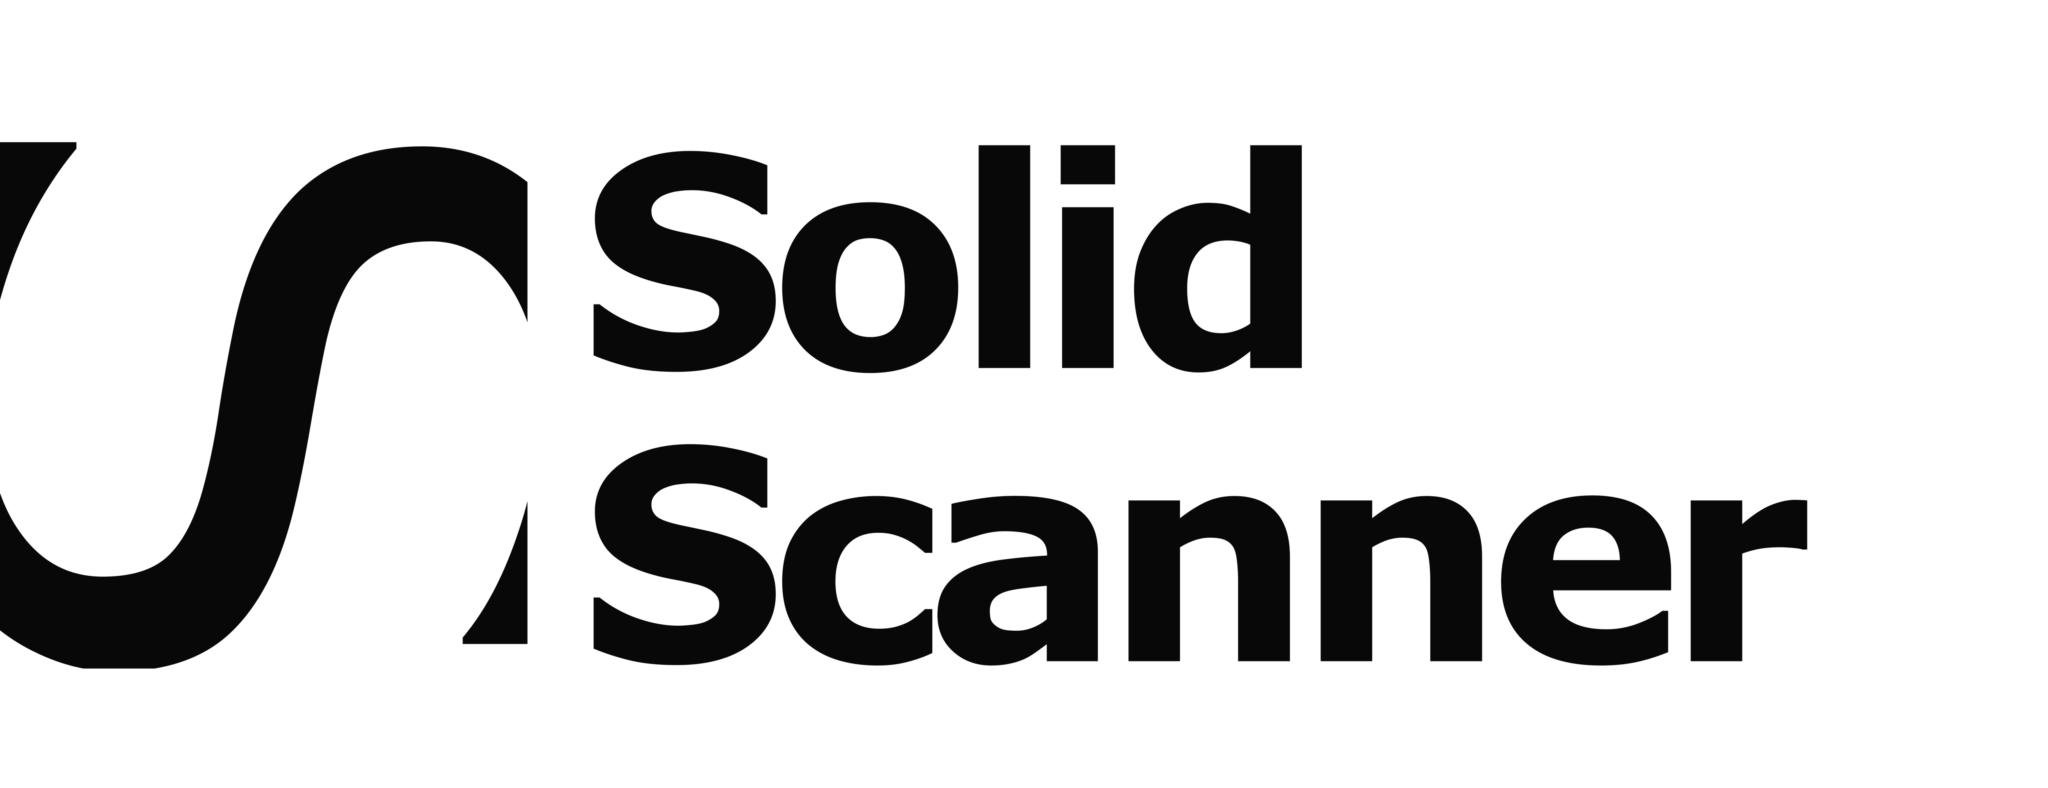 Solid Scanner